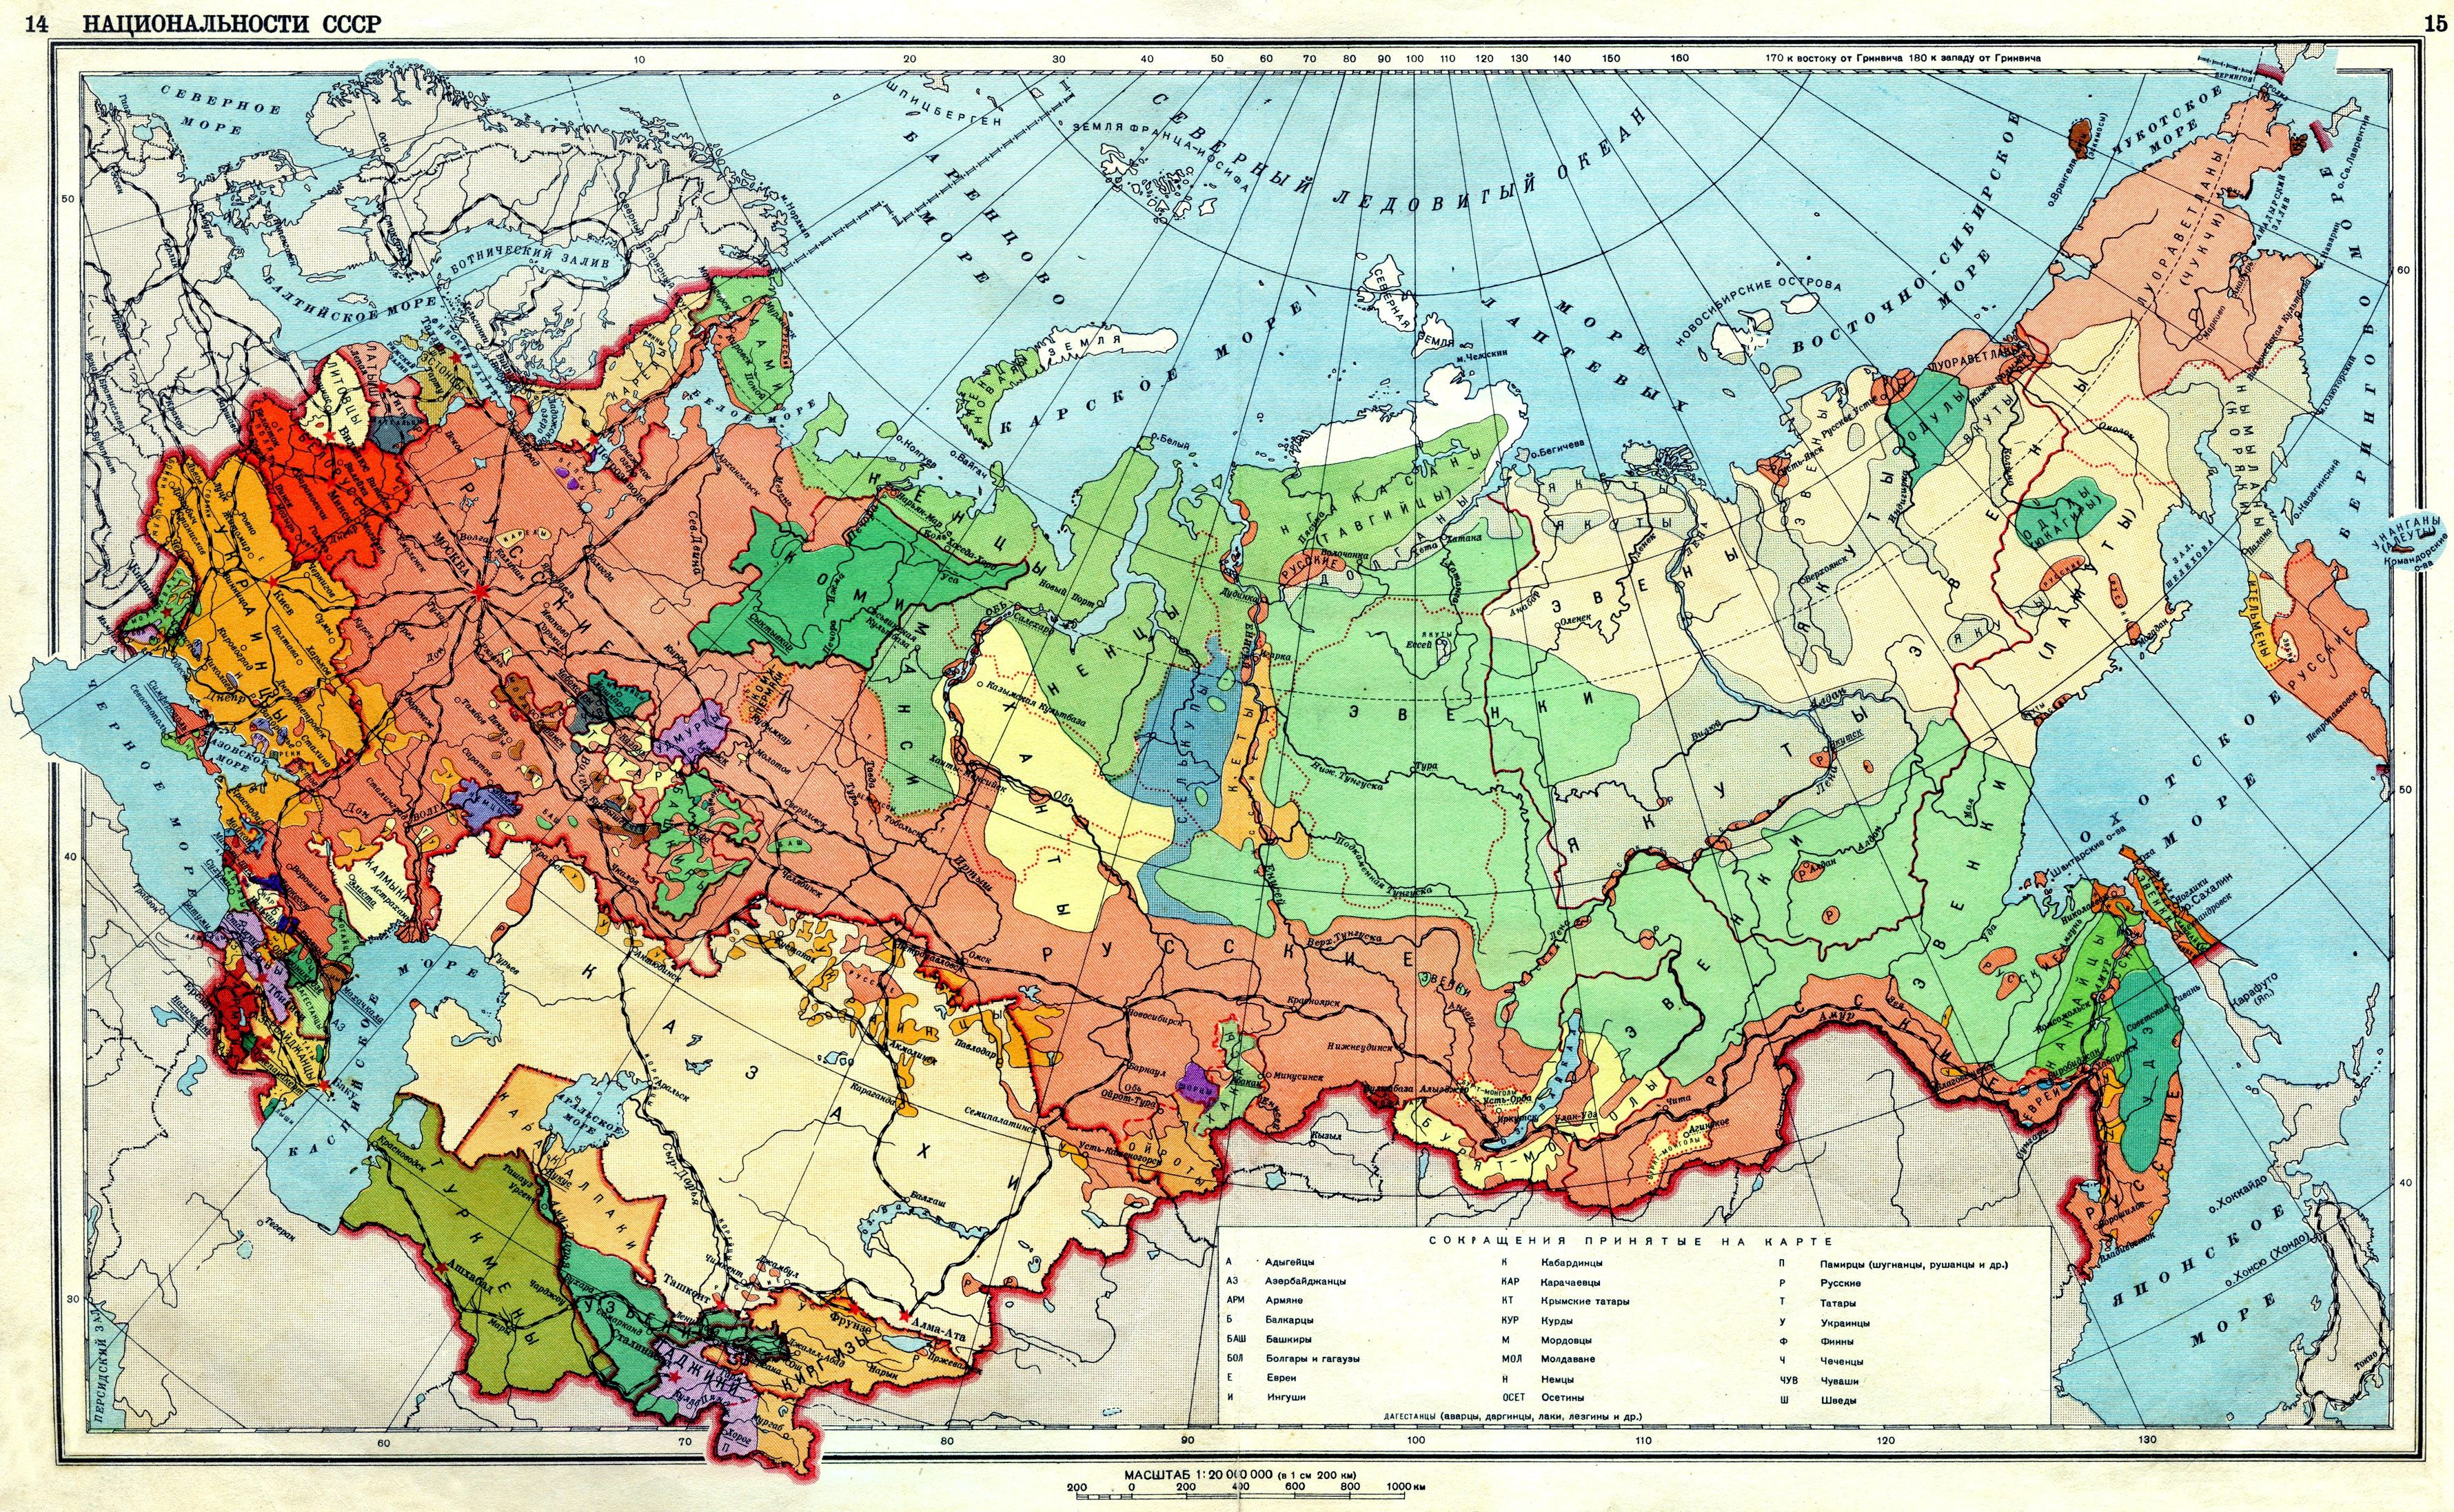 The most famous and mysterious places on the map of Russia